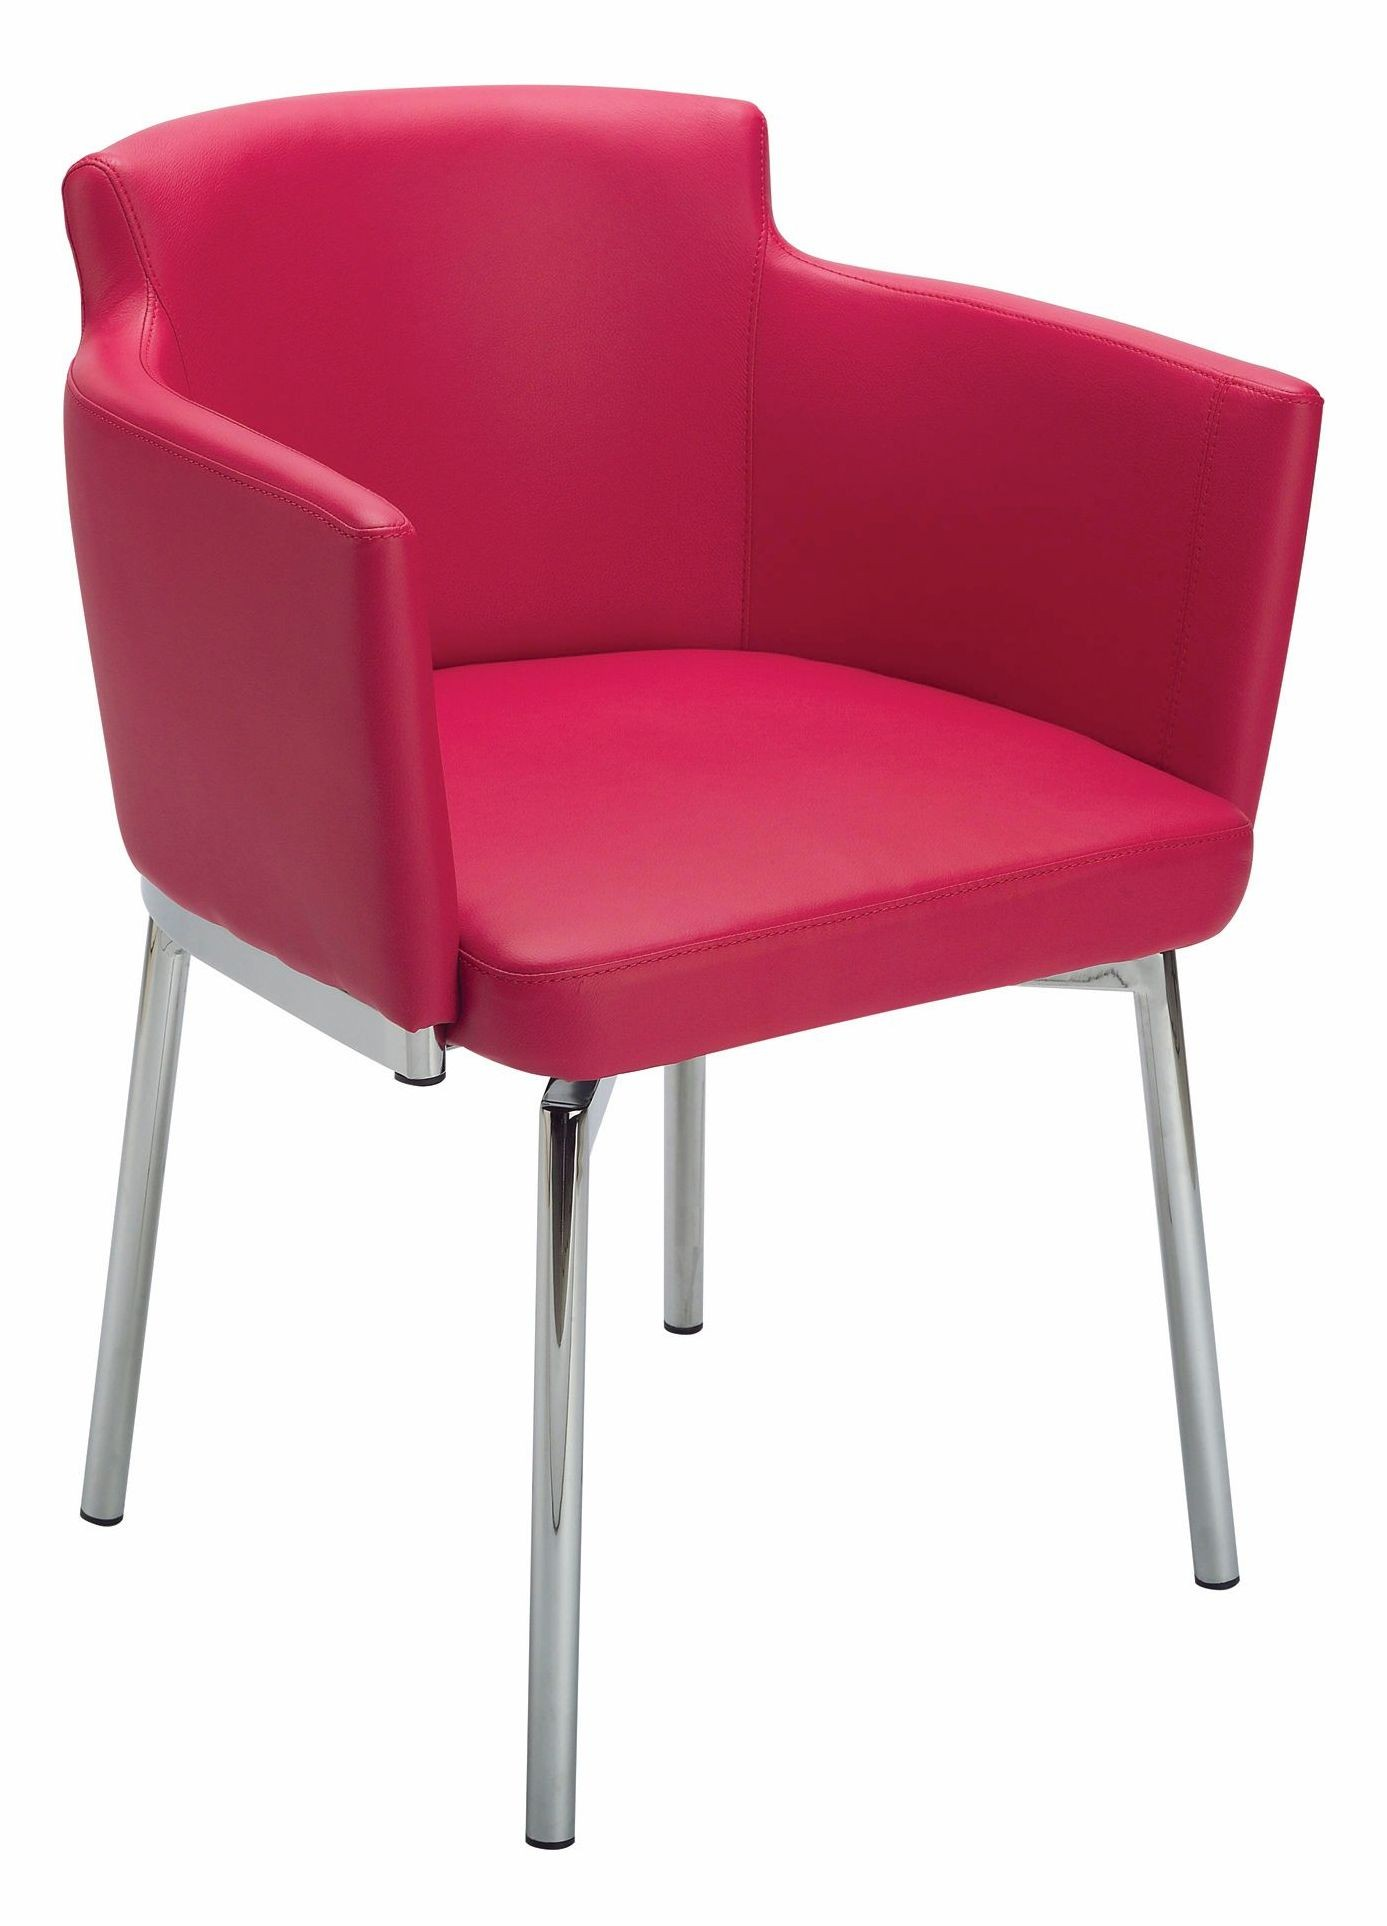 Red Swivel Chair Garcia Red Swivel Chair From Sunpan 10934 Coleman